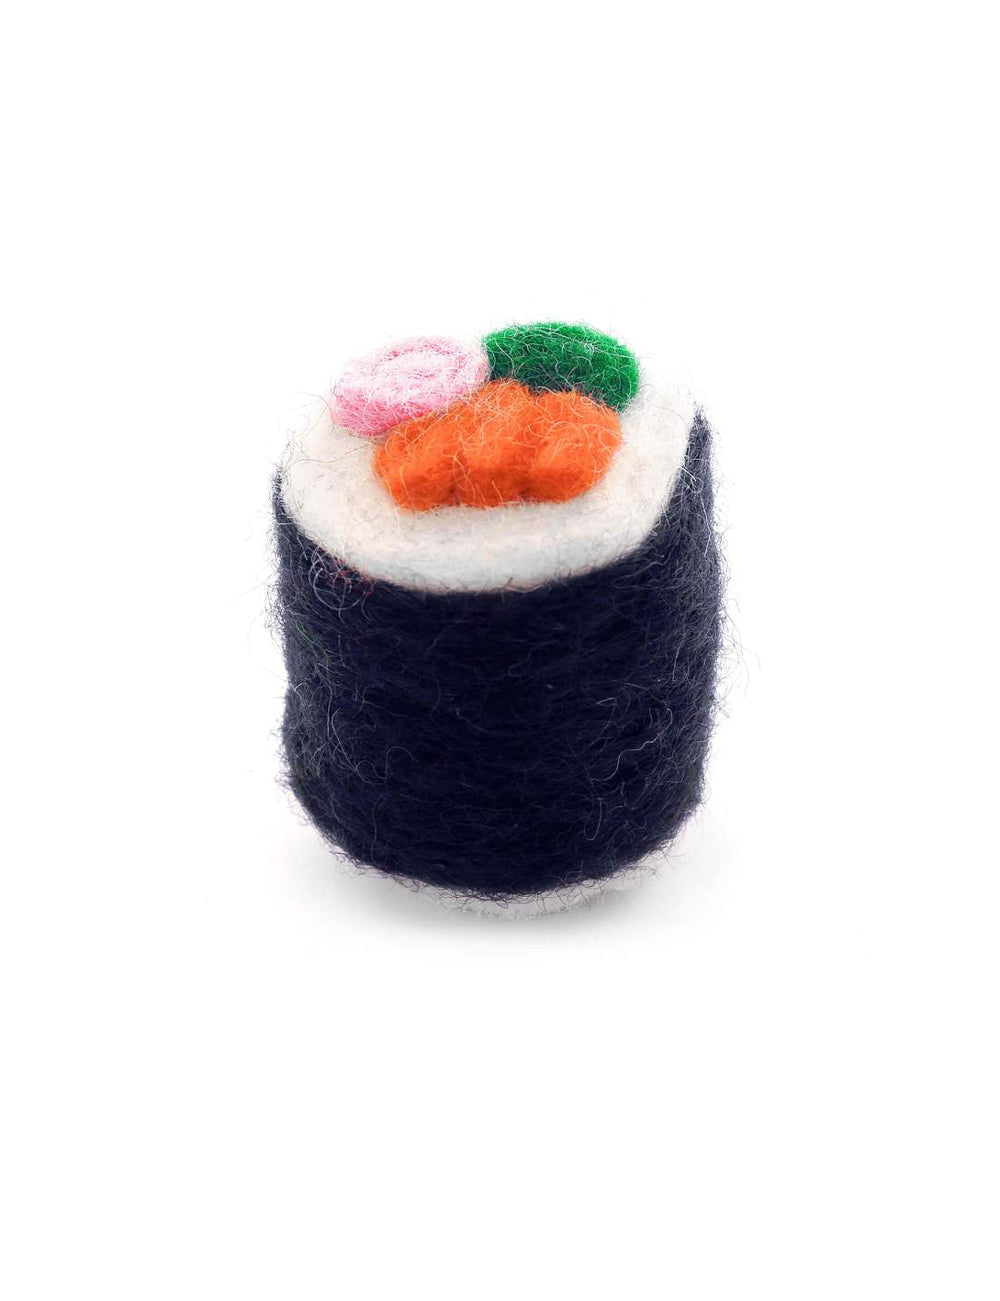 California Roll Sushi Cat Toy